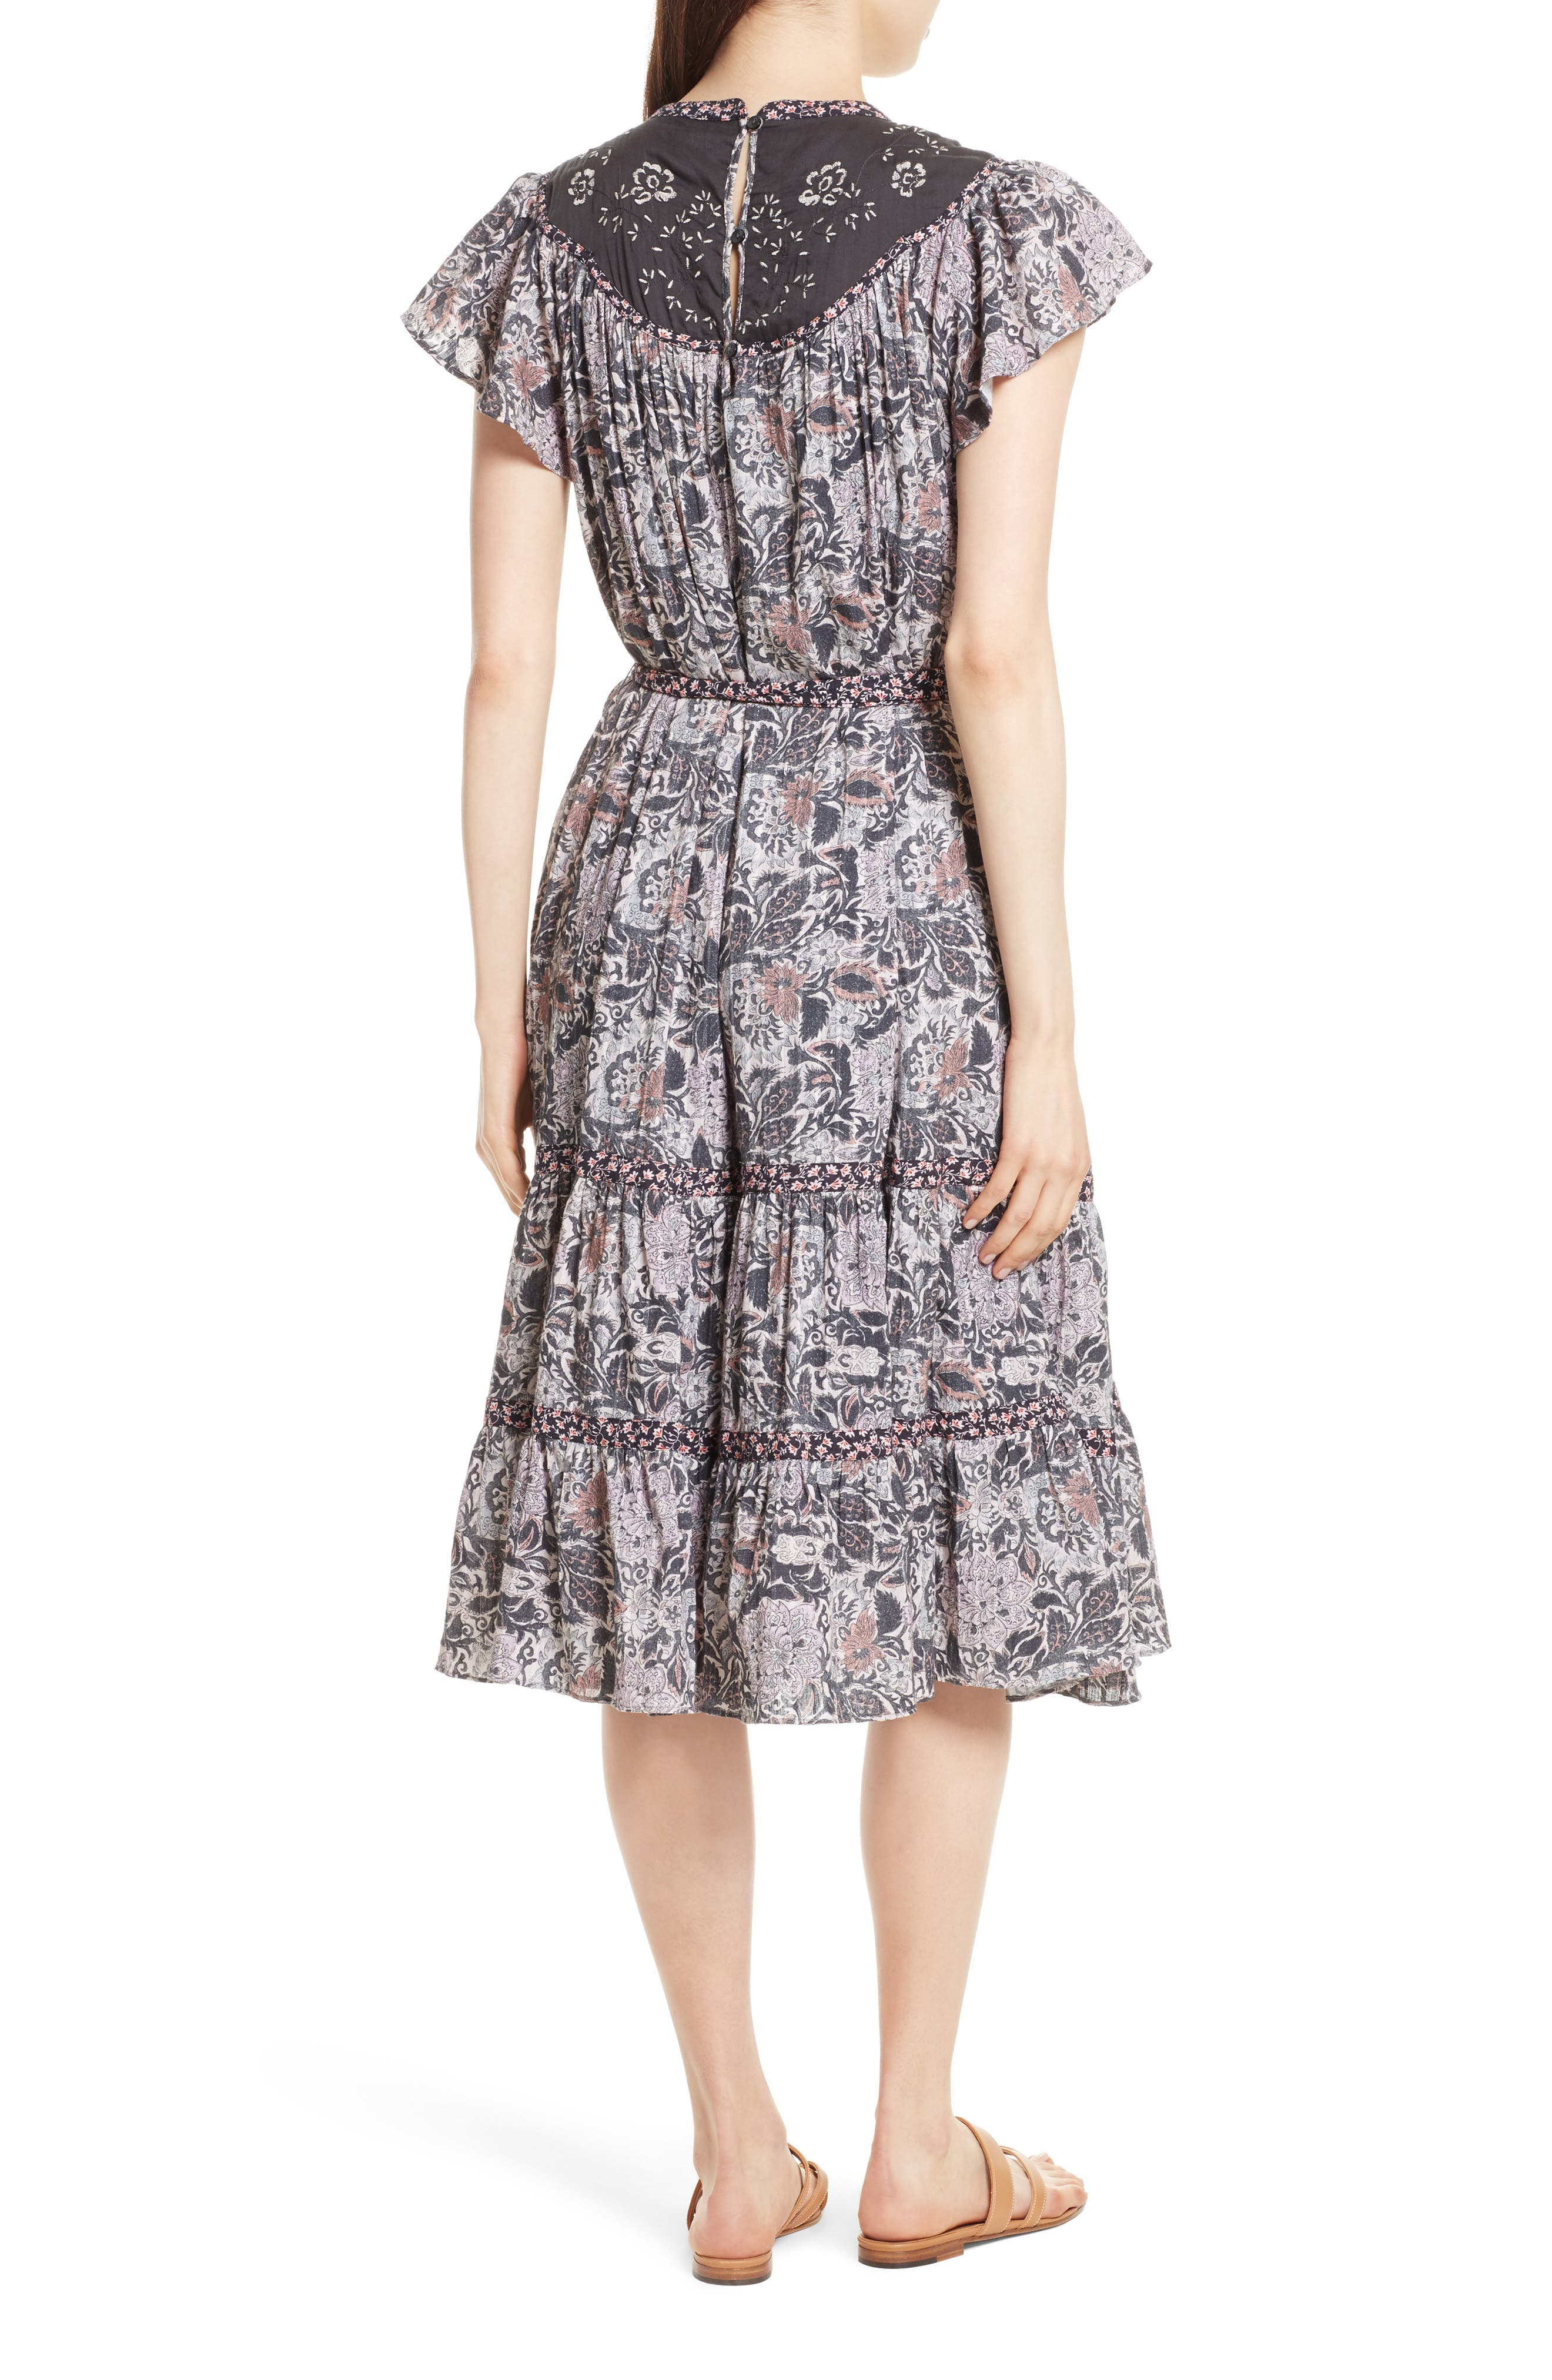 Indochine Embroidered Floral Dress,                             Alternate thumbnail 2, color,                             Washed Black Combo